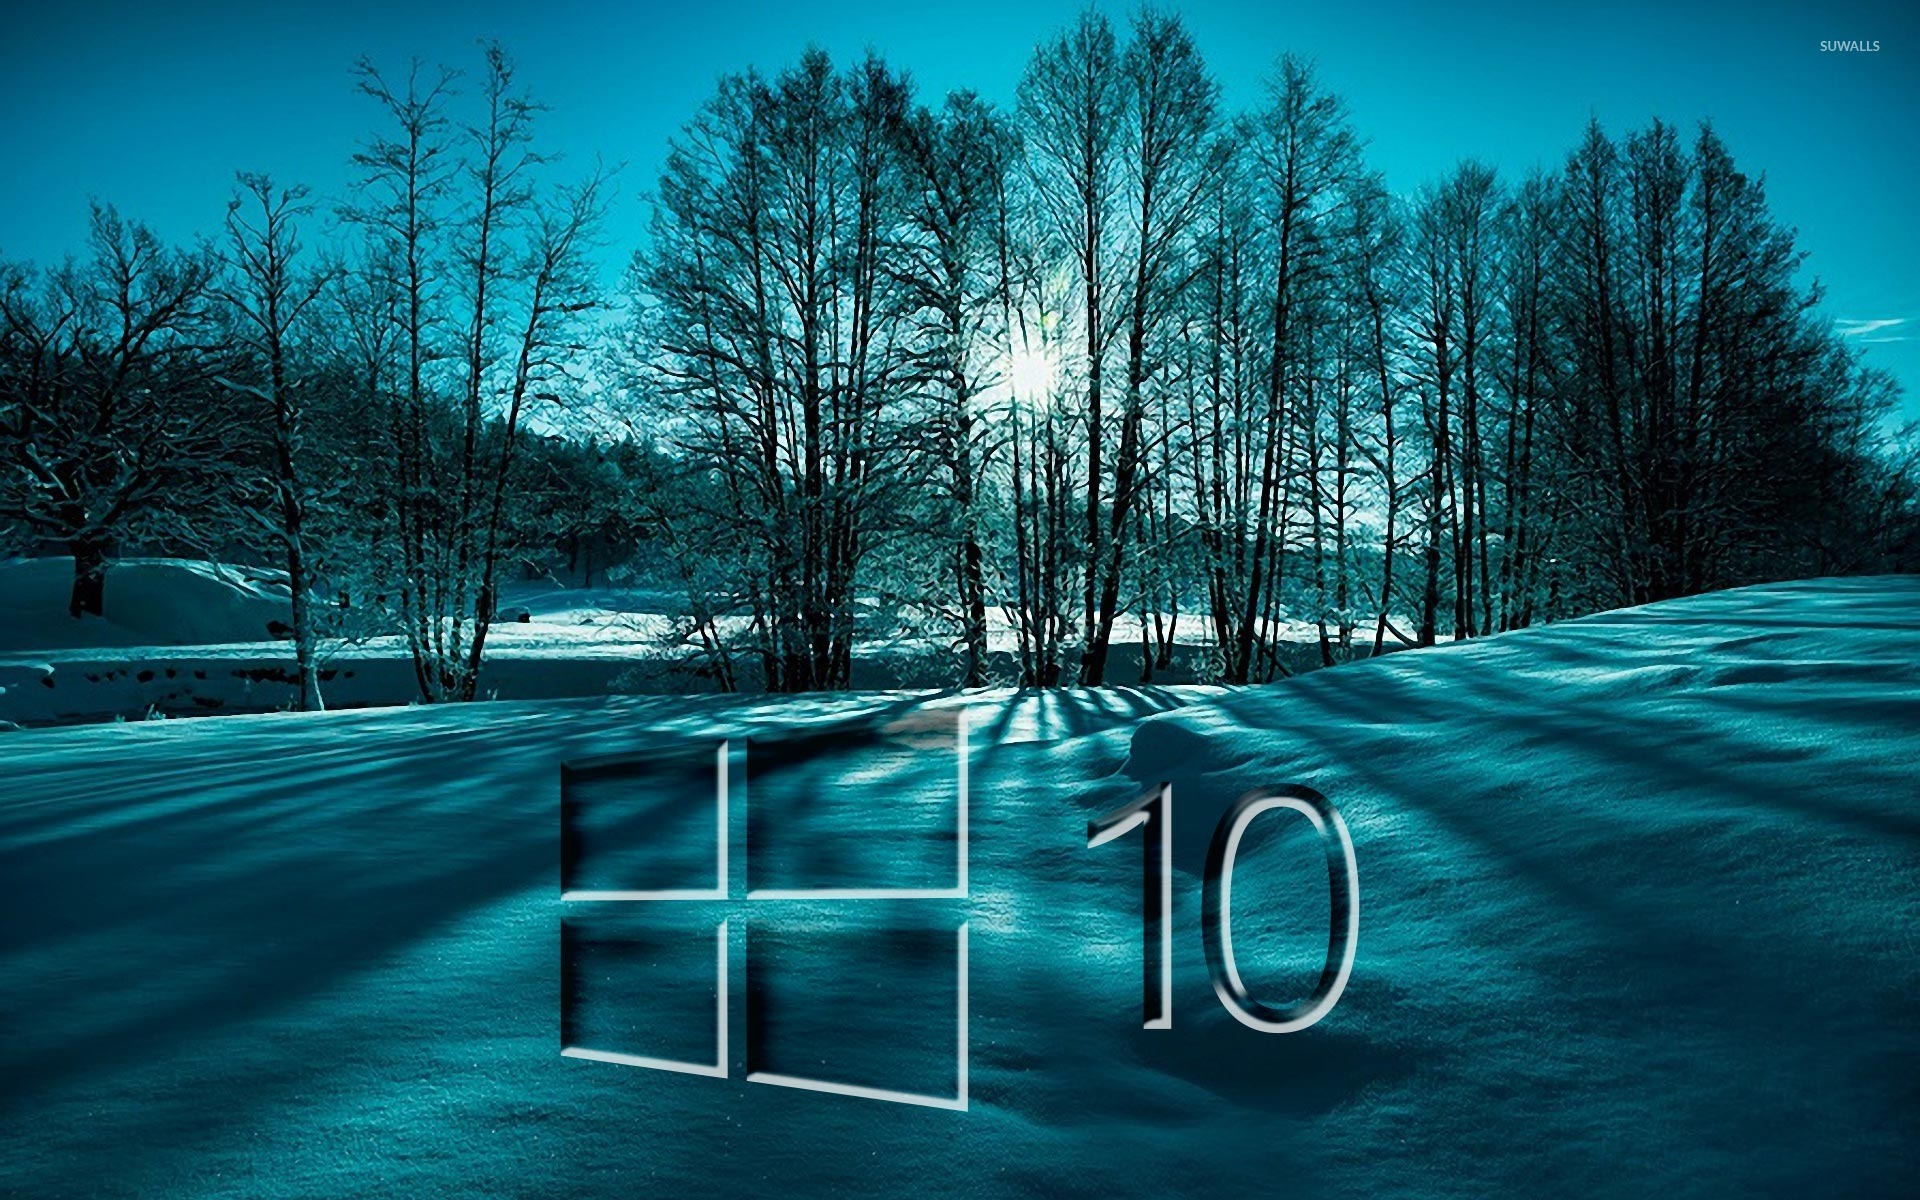 windows 10 on snowy trees glass logo wallpaper - computer wallpapers